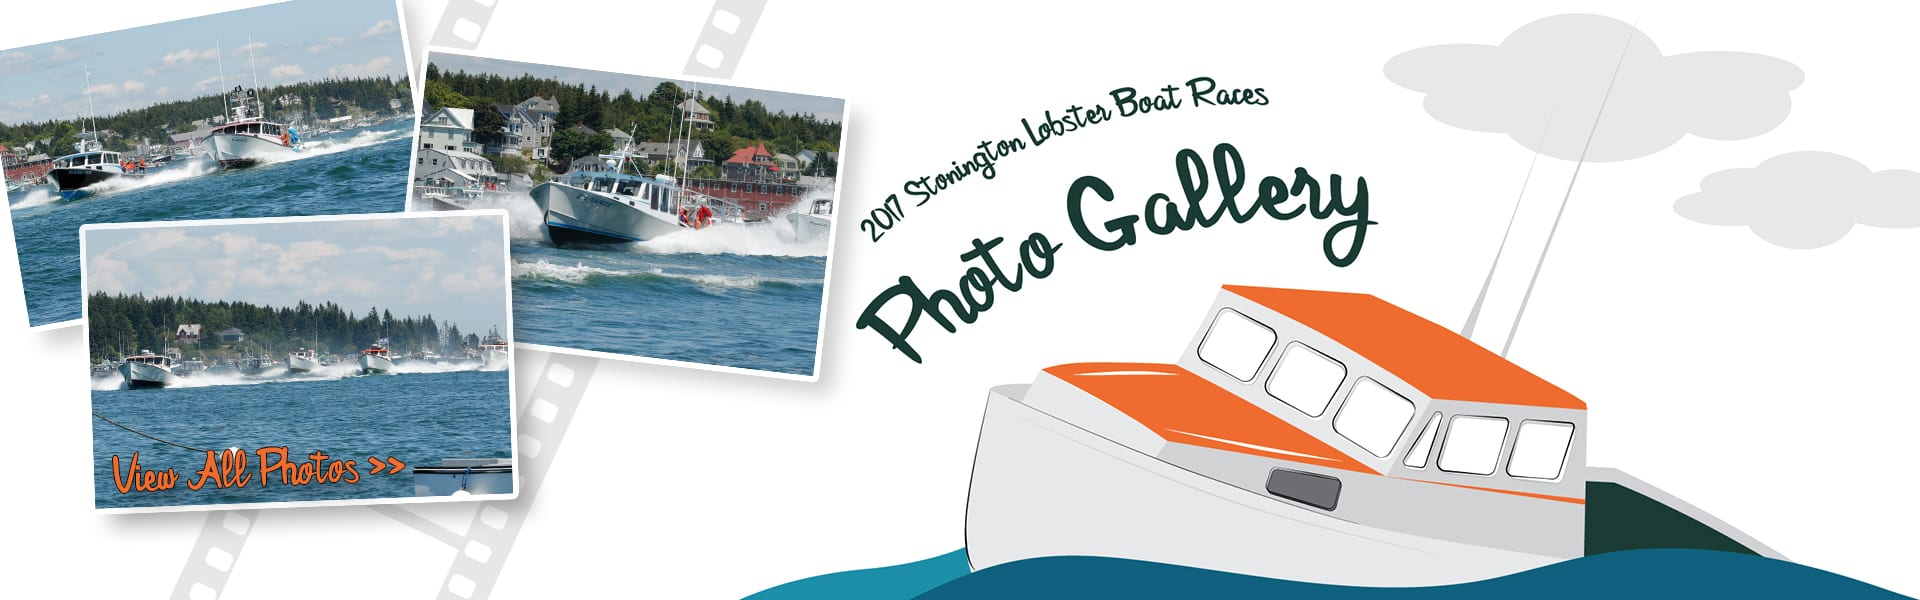 Lobster Boat Races Photo Gallery